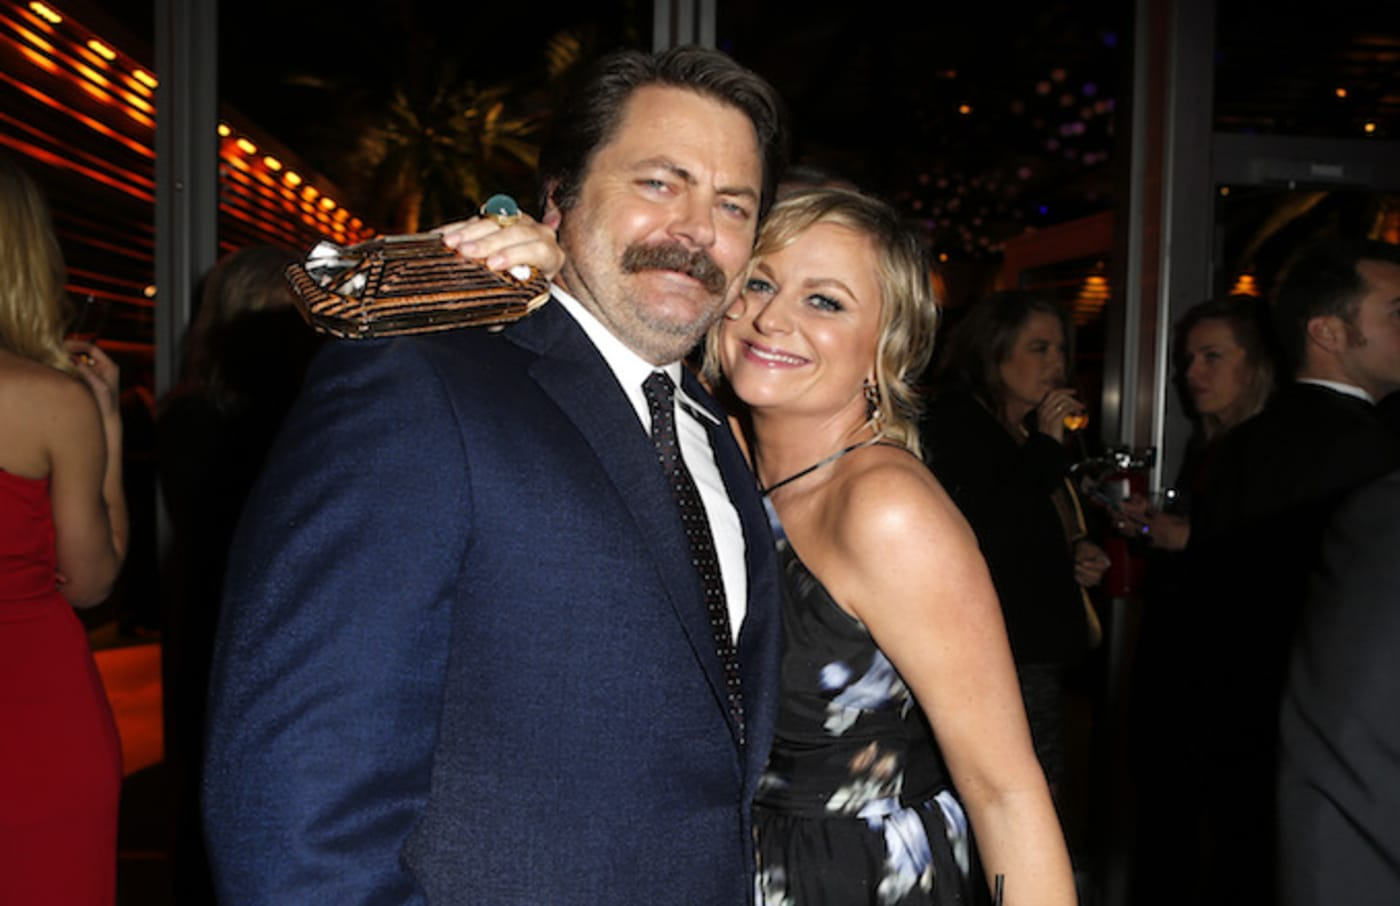 Nick Offerman and Amy Poehler, stars of 'Parks and Recreation.'